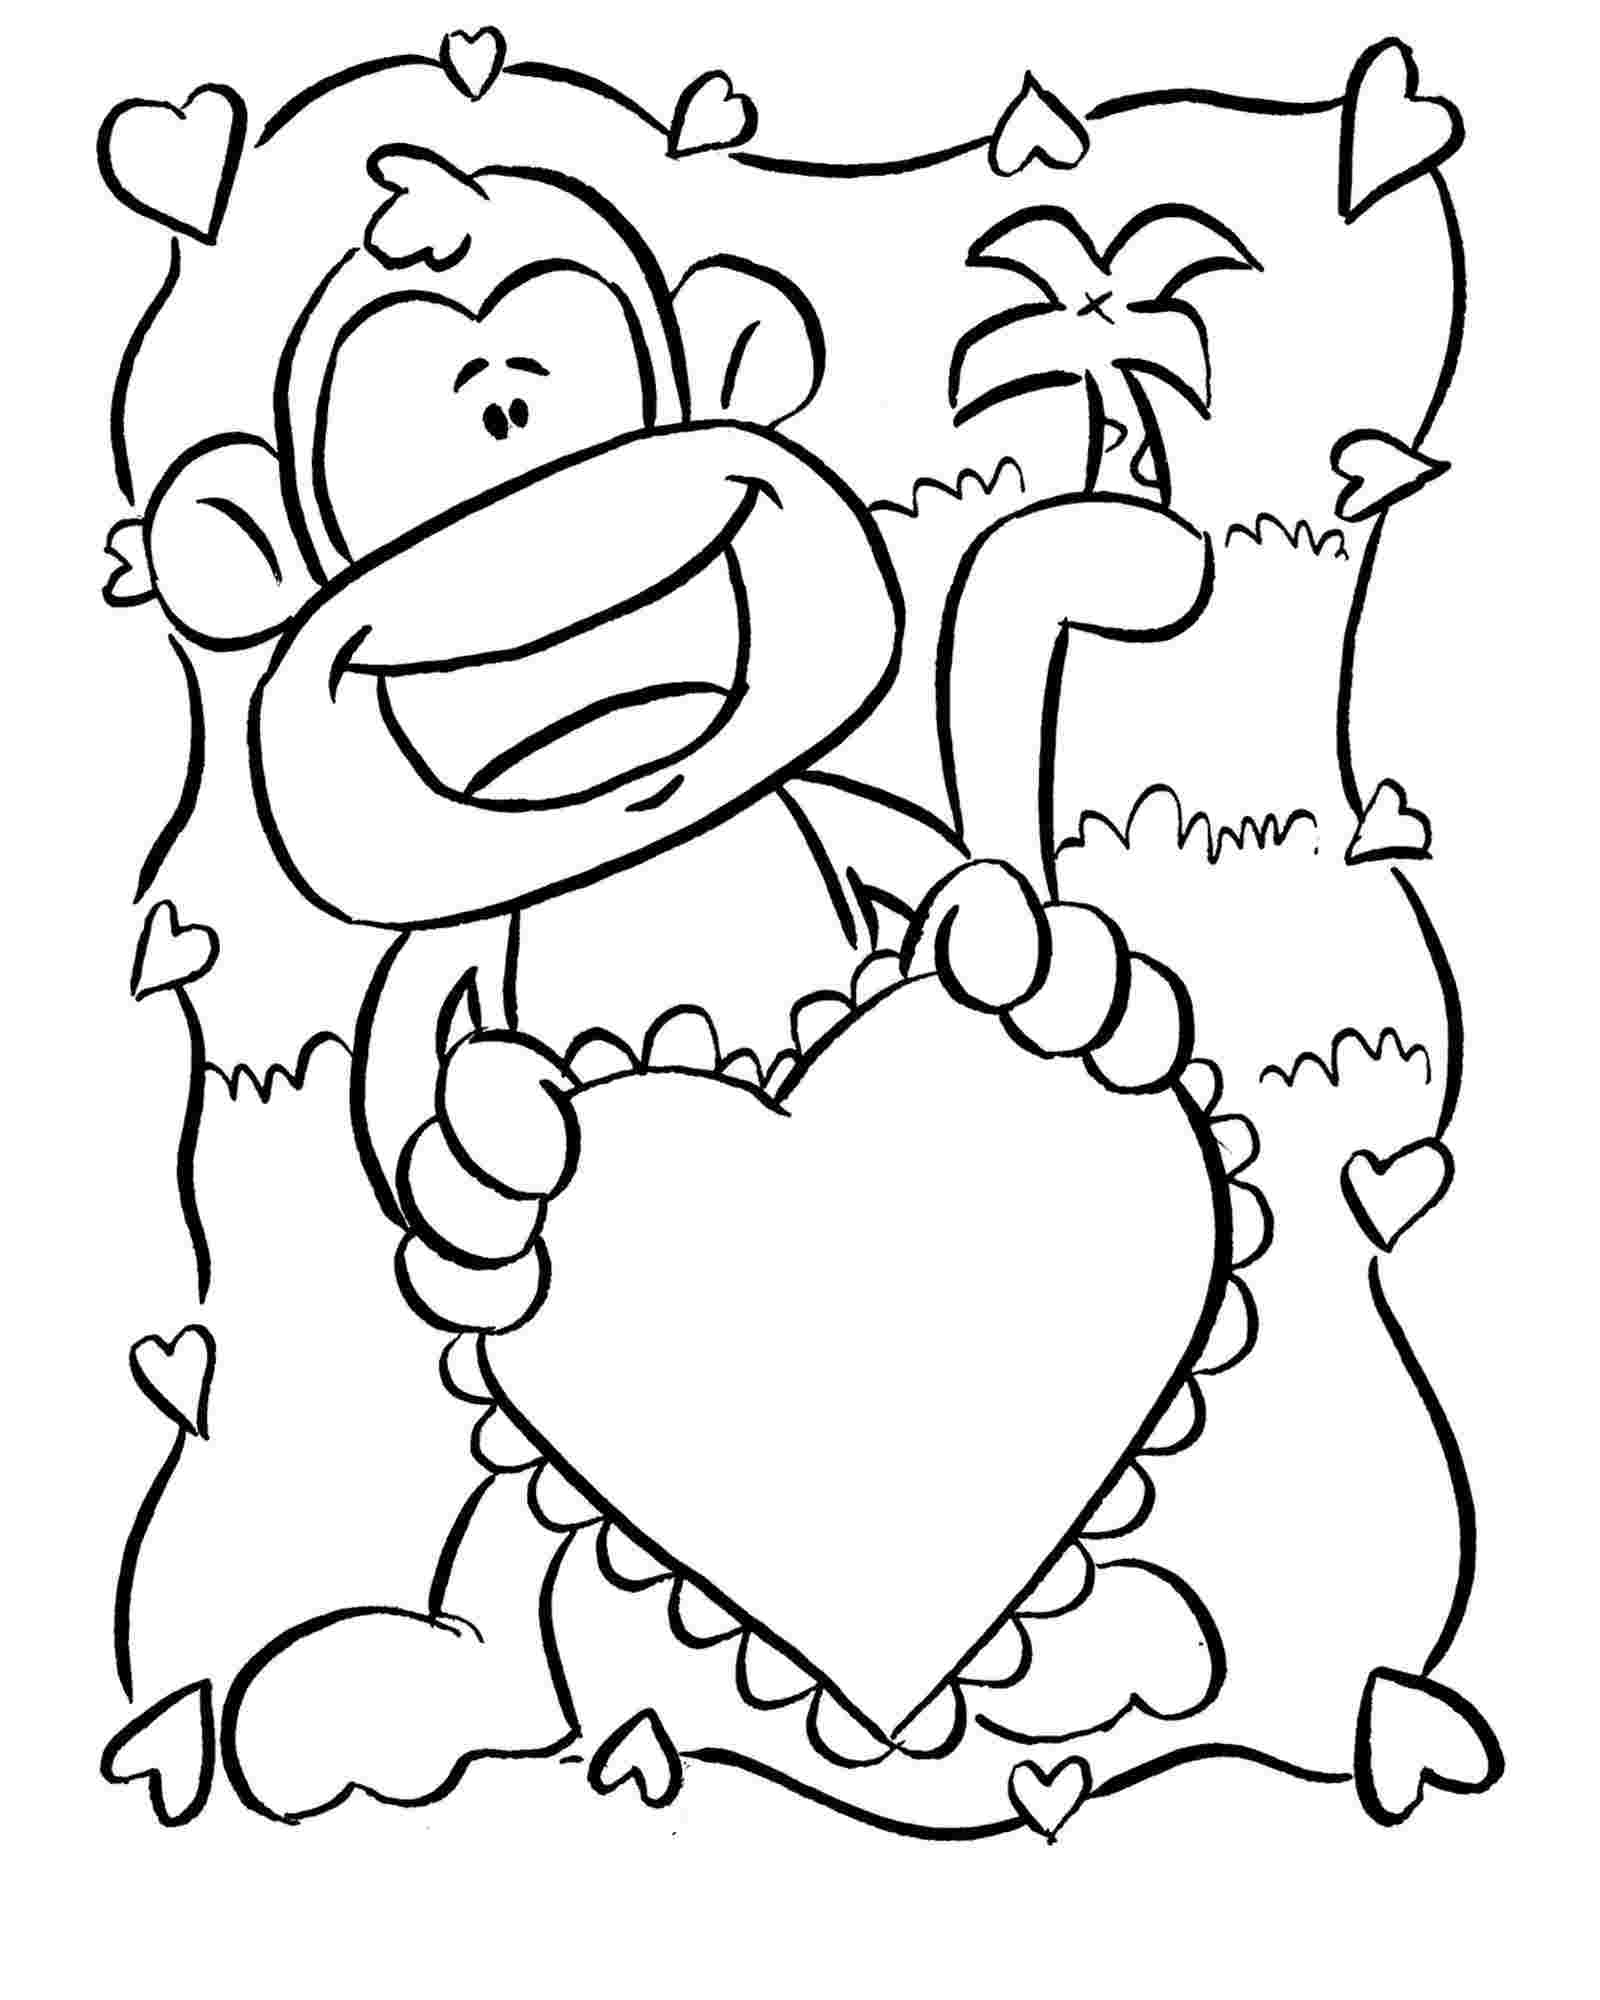 colouring pictures of monkeys monkey coloring pages free for kids 10 coloring pages colouring pictures monkeys of